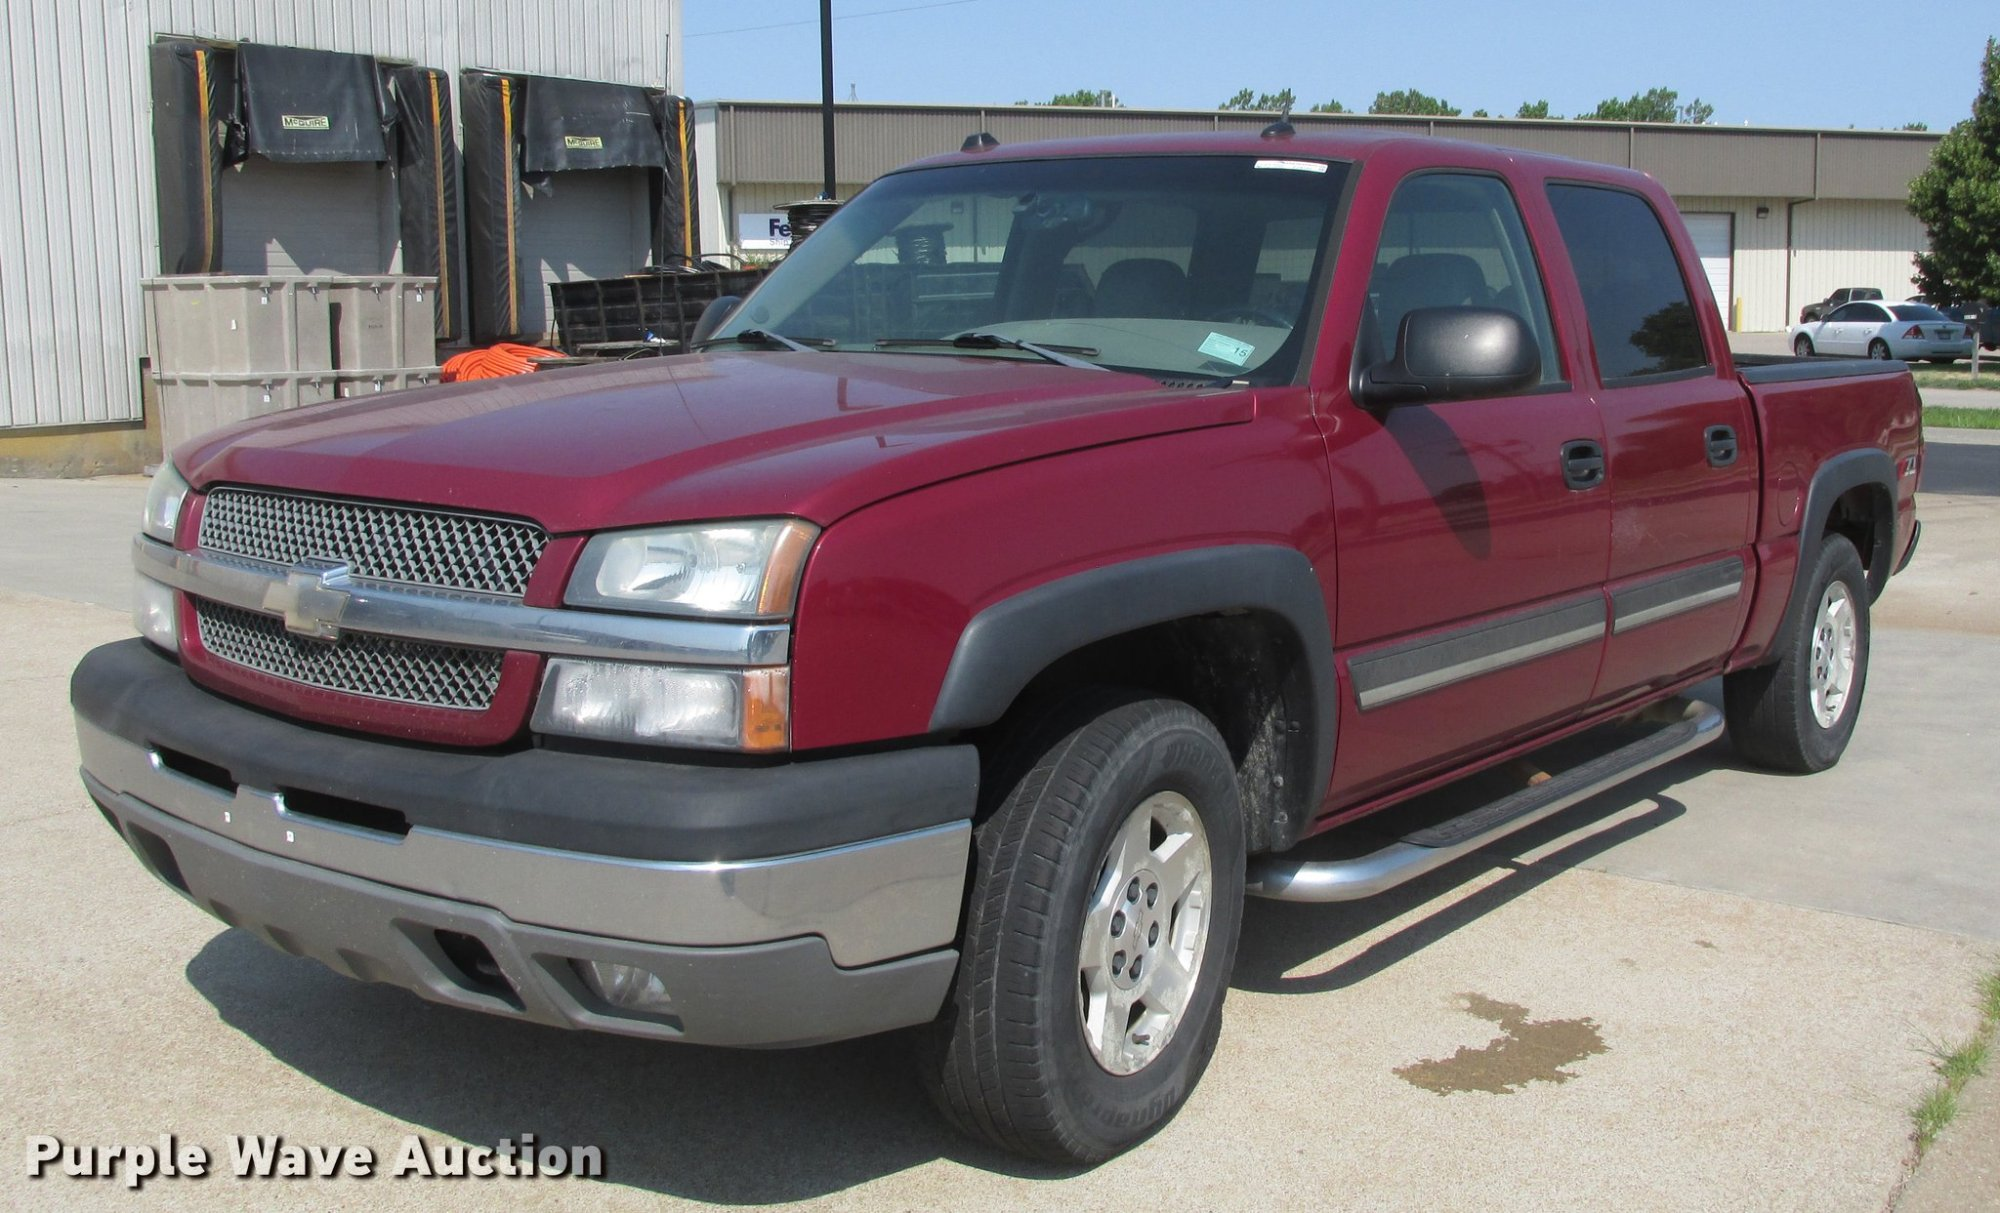 hight resolution of eh9760 image for item eh9760 2005 chevrolet silverado 1500 z71